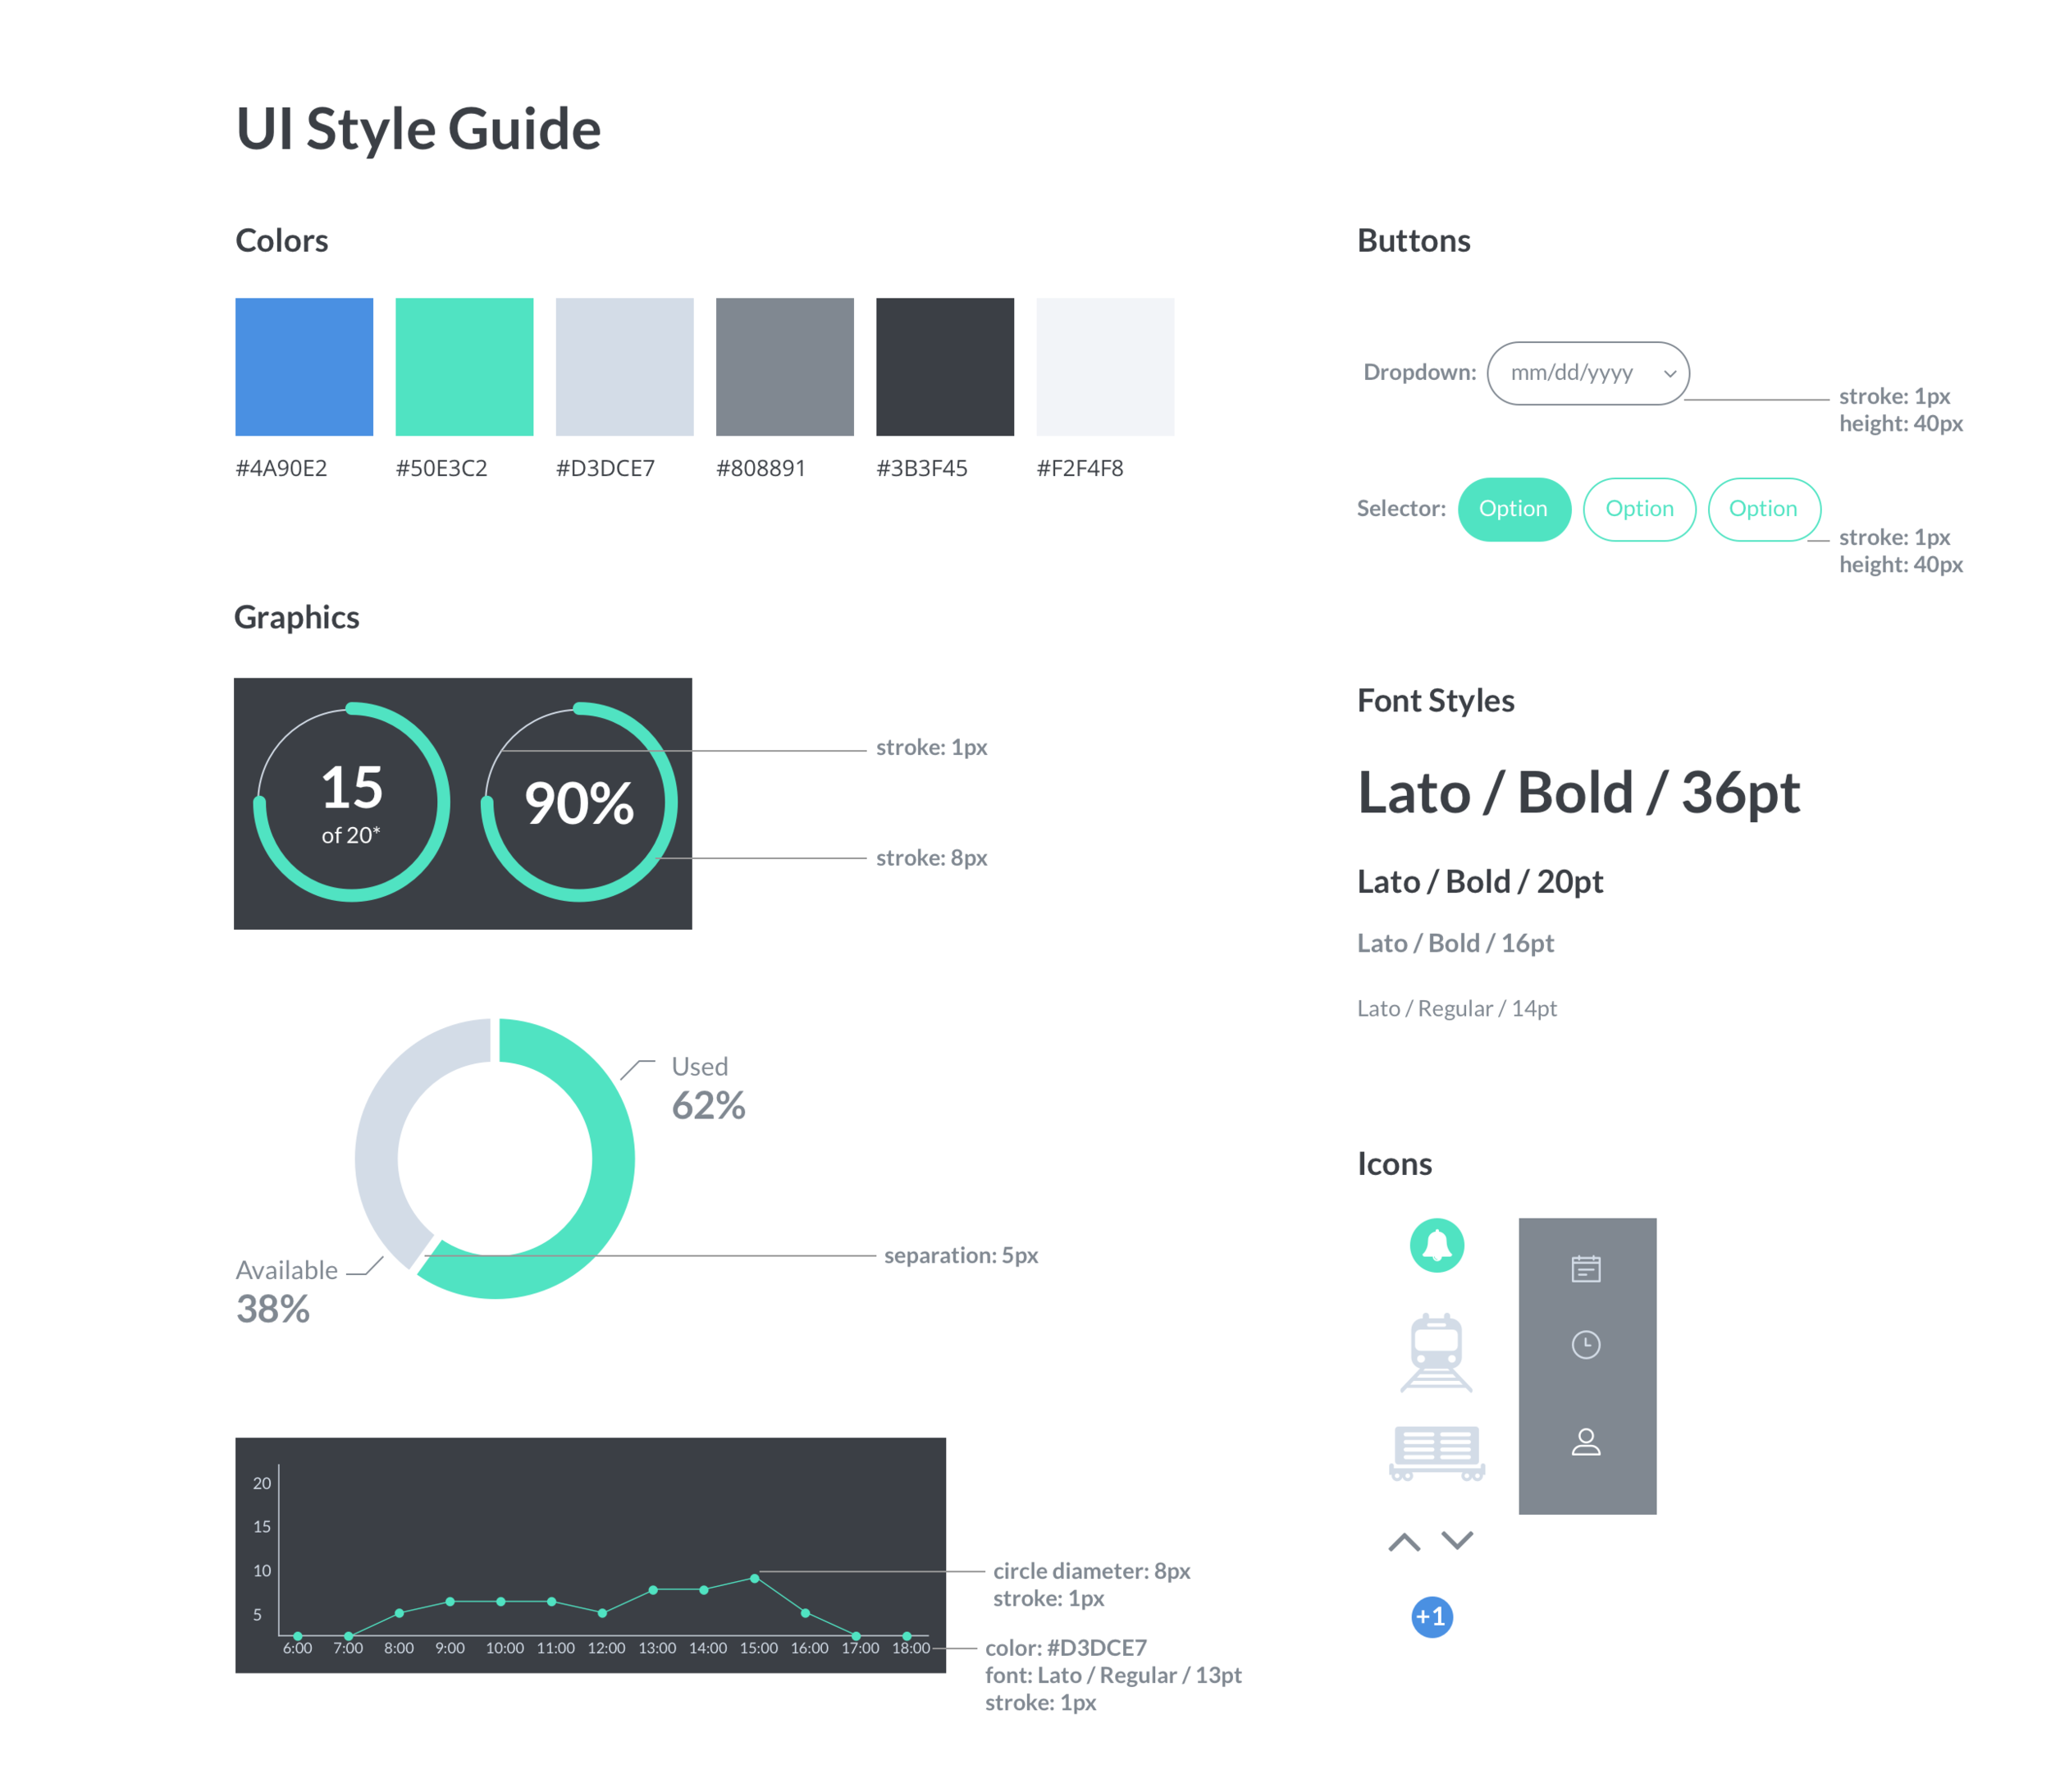 UI_Style_Guide@2x.png